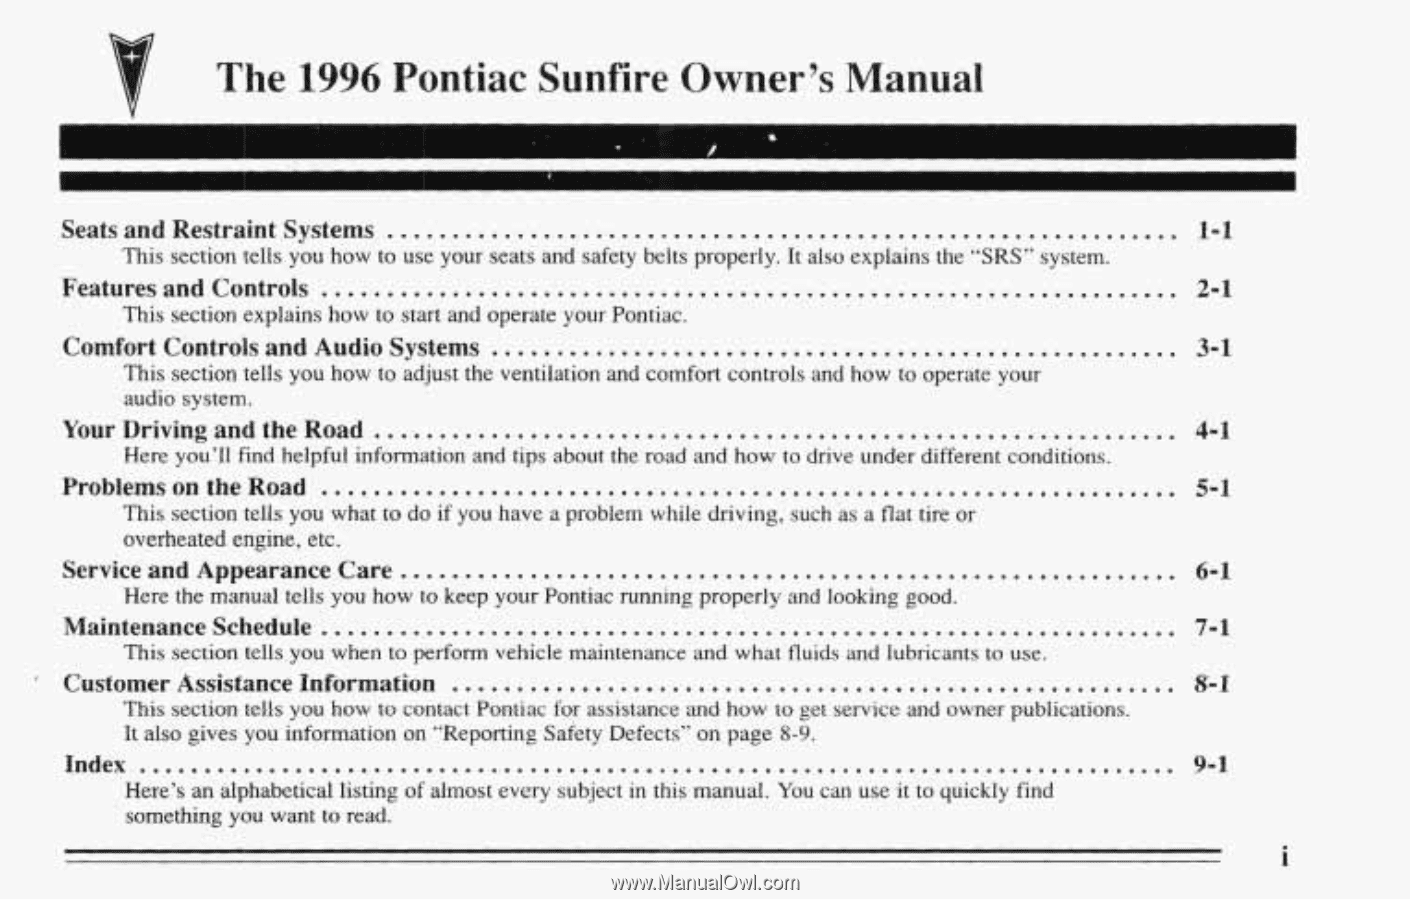 The. 1996. Pontiac Sunfire Owner's Manual